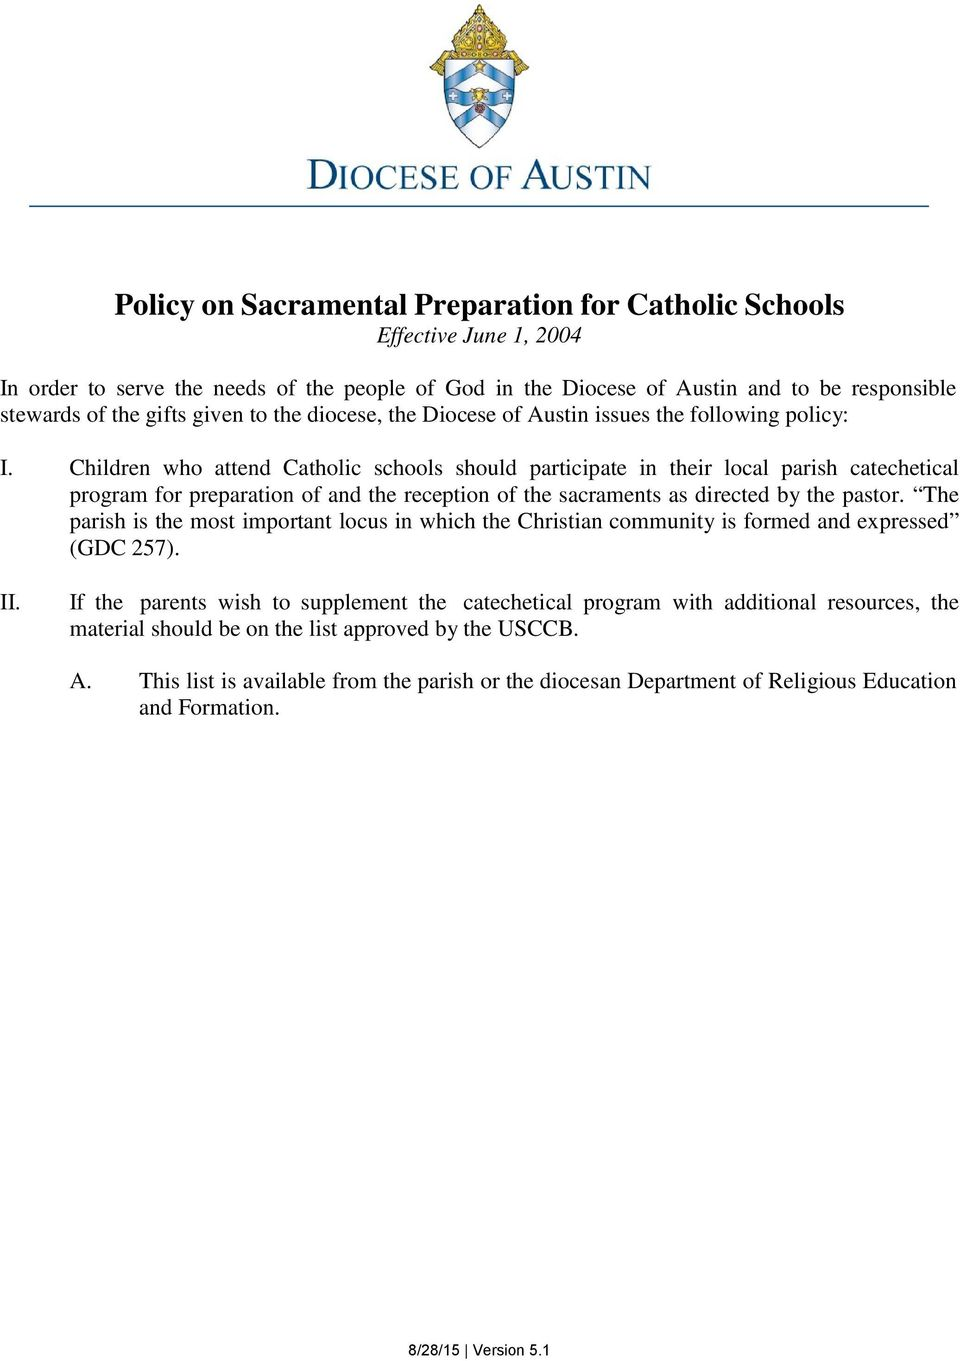 Children who attend Catholic schools should participate in their local parish catechetical program for preparation of and the reception of the sacraments as directed by the pastor.